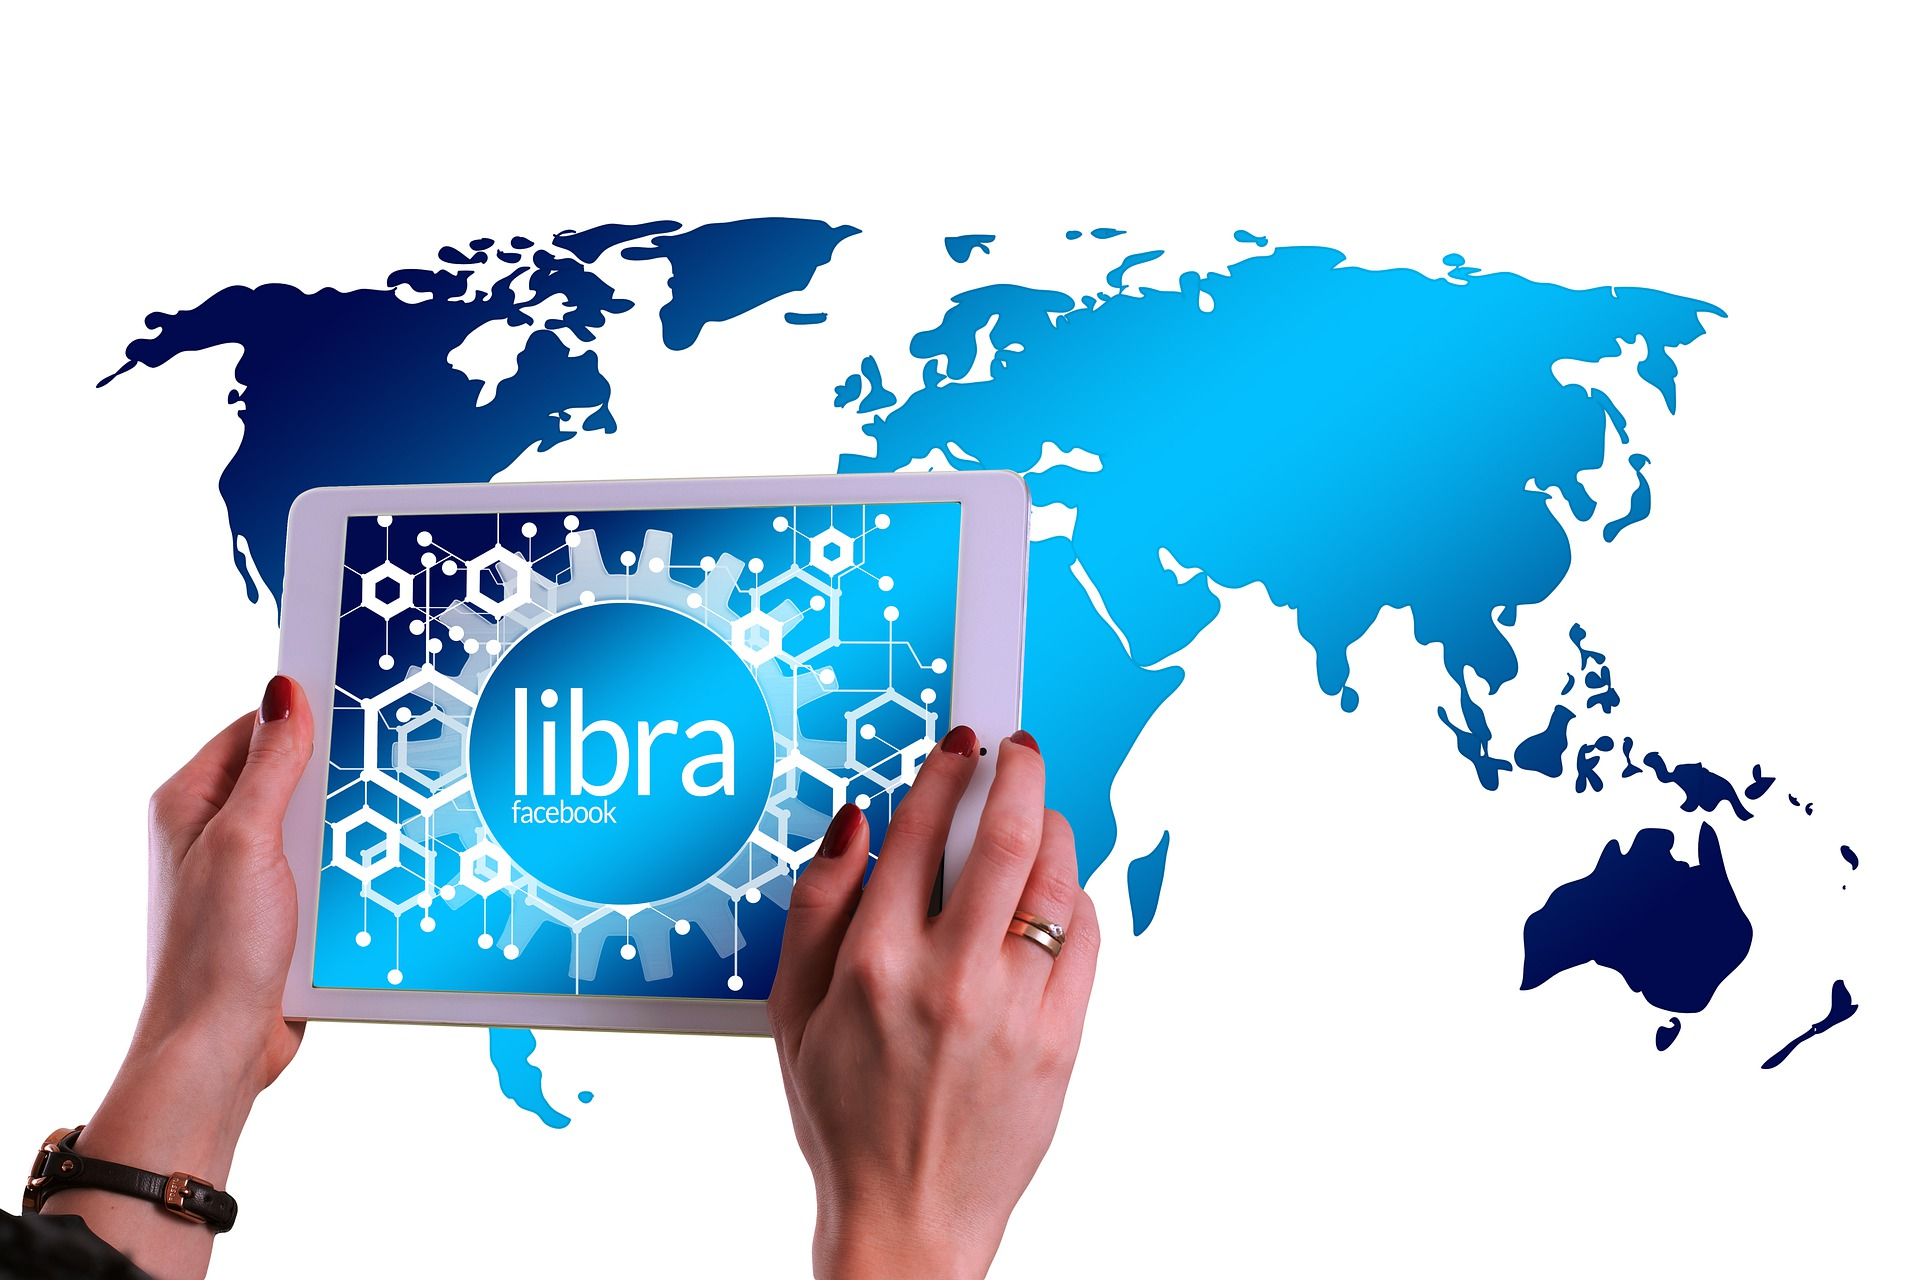 Why Libra matters to Silicon Valley